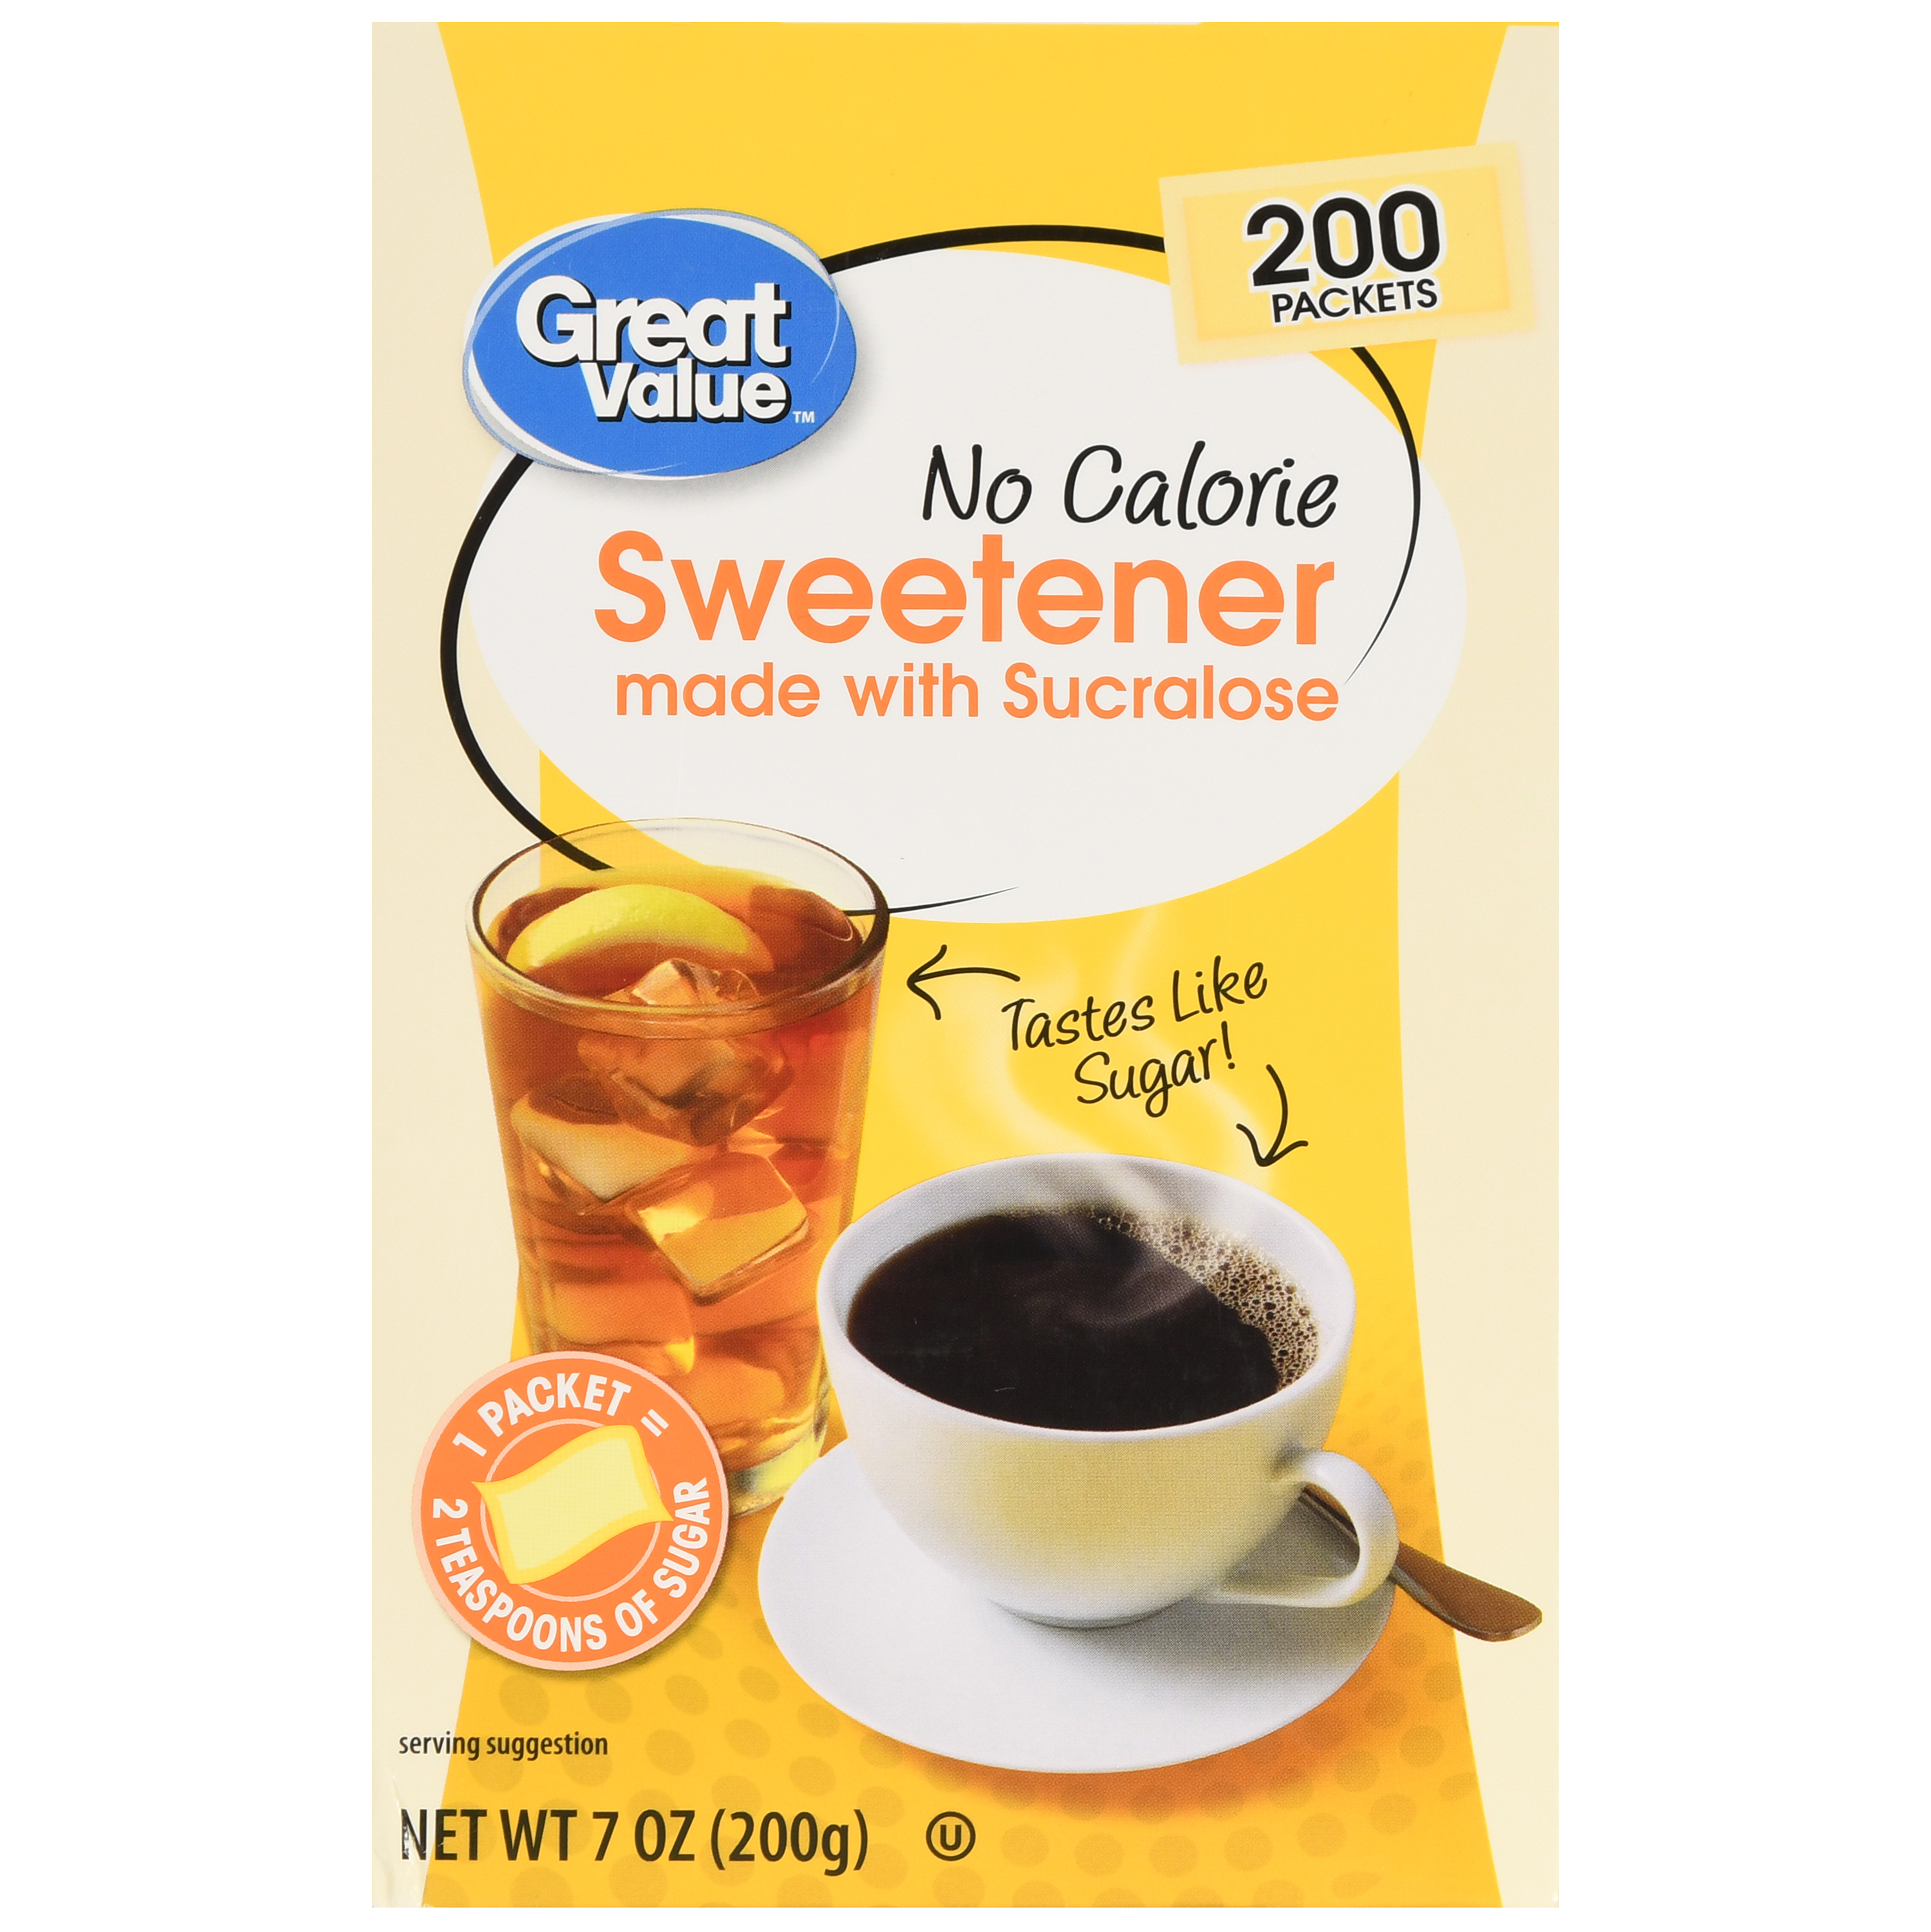 Great Value Sweetener with Sucralose Packets, No Calorie, 7 oz, 200 Count